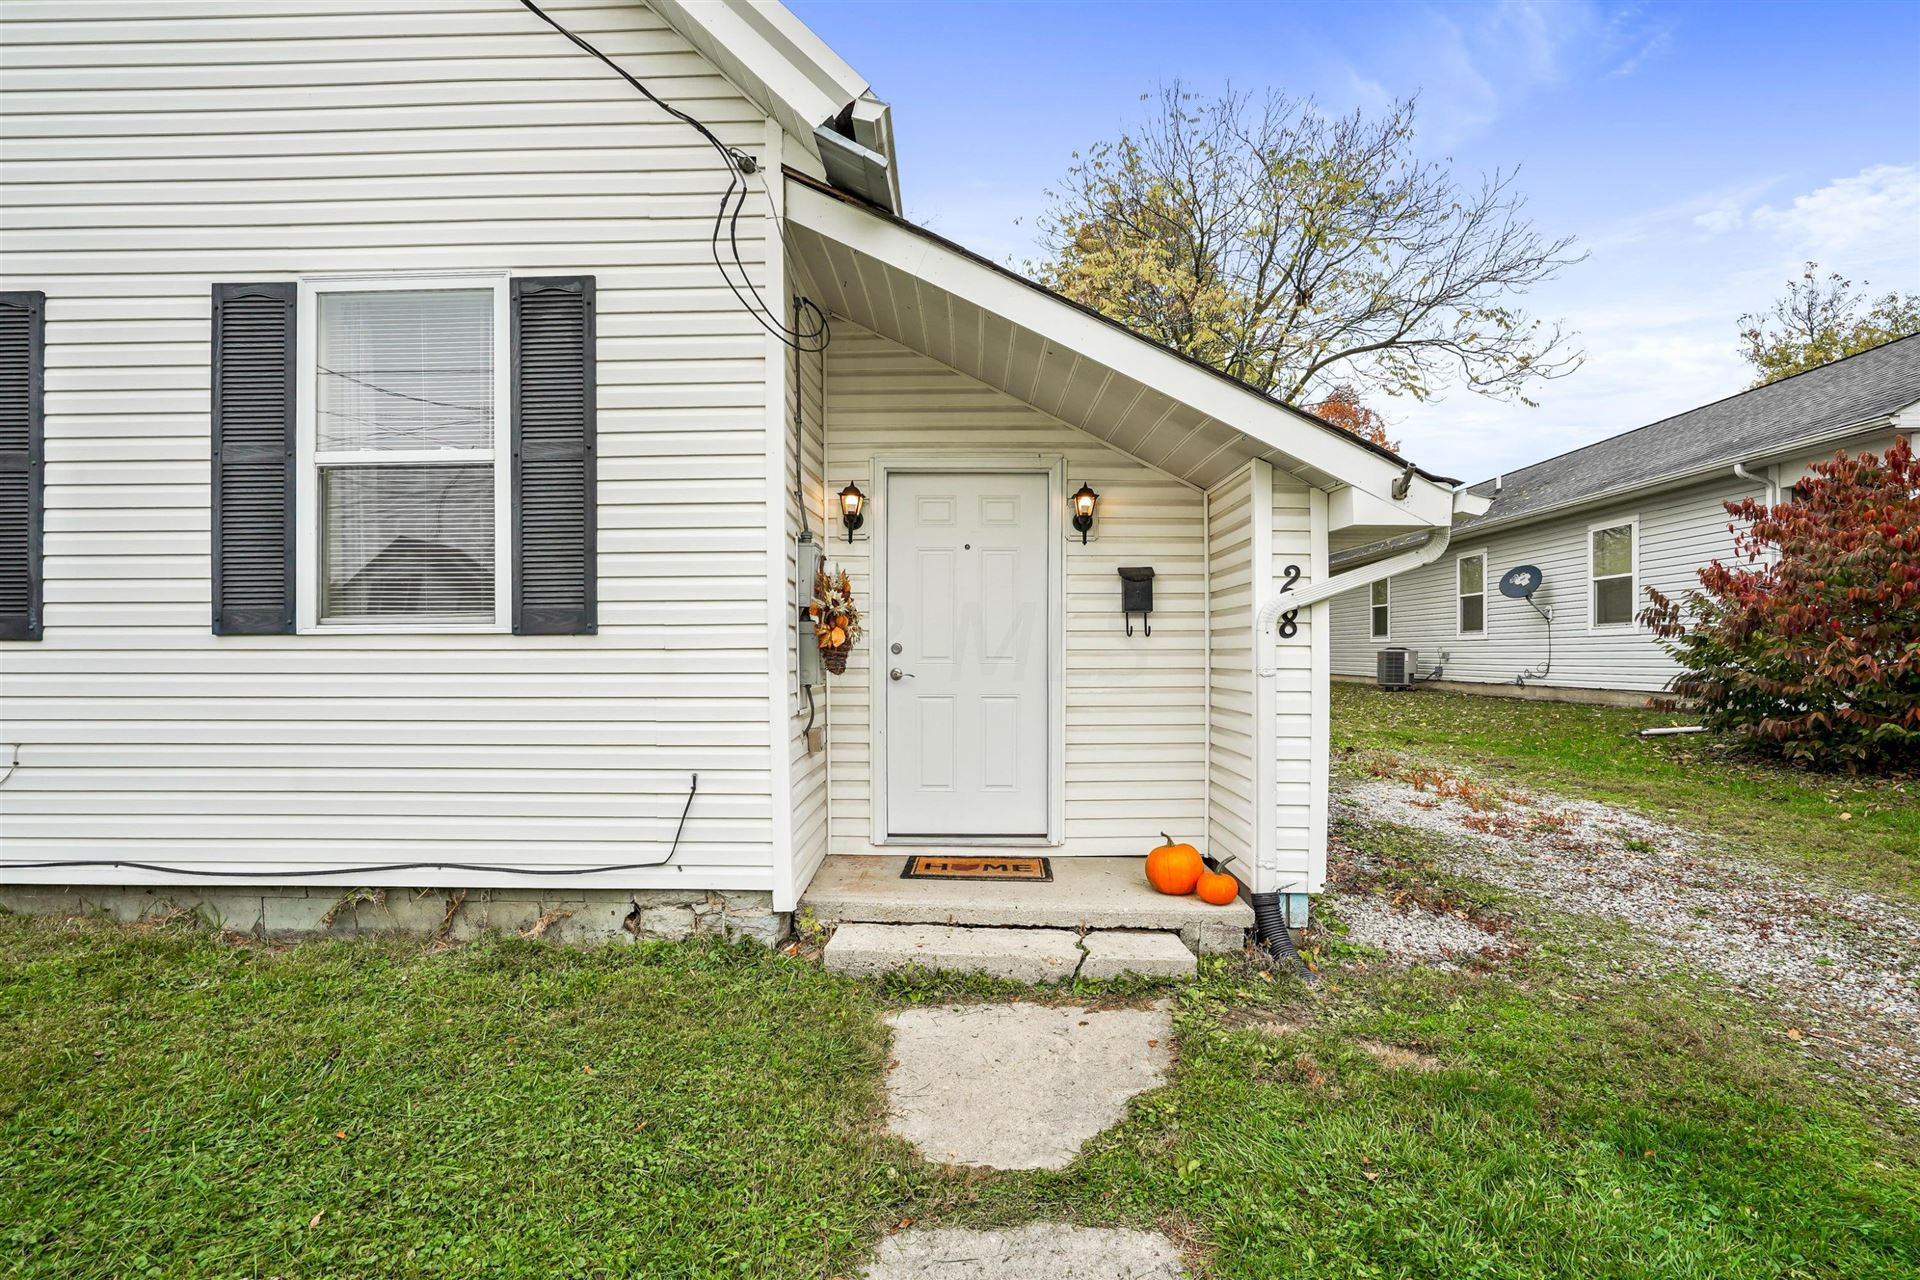 Photo of 28 Eaton Street, Delaware, OH 43015 (MLS # 220038309)